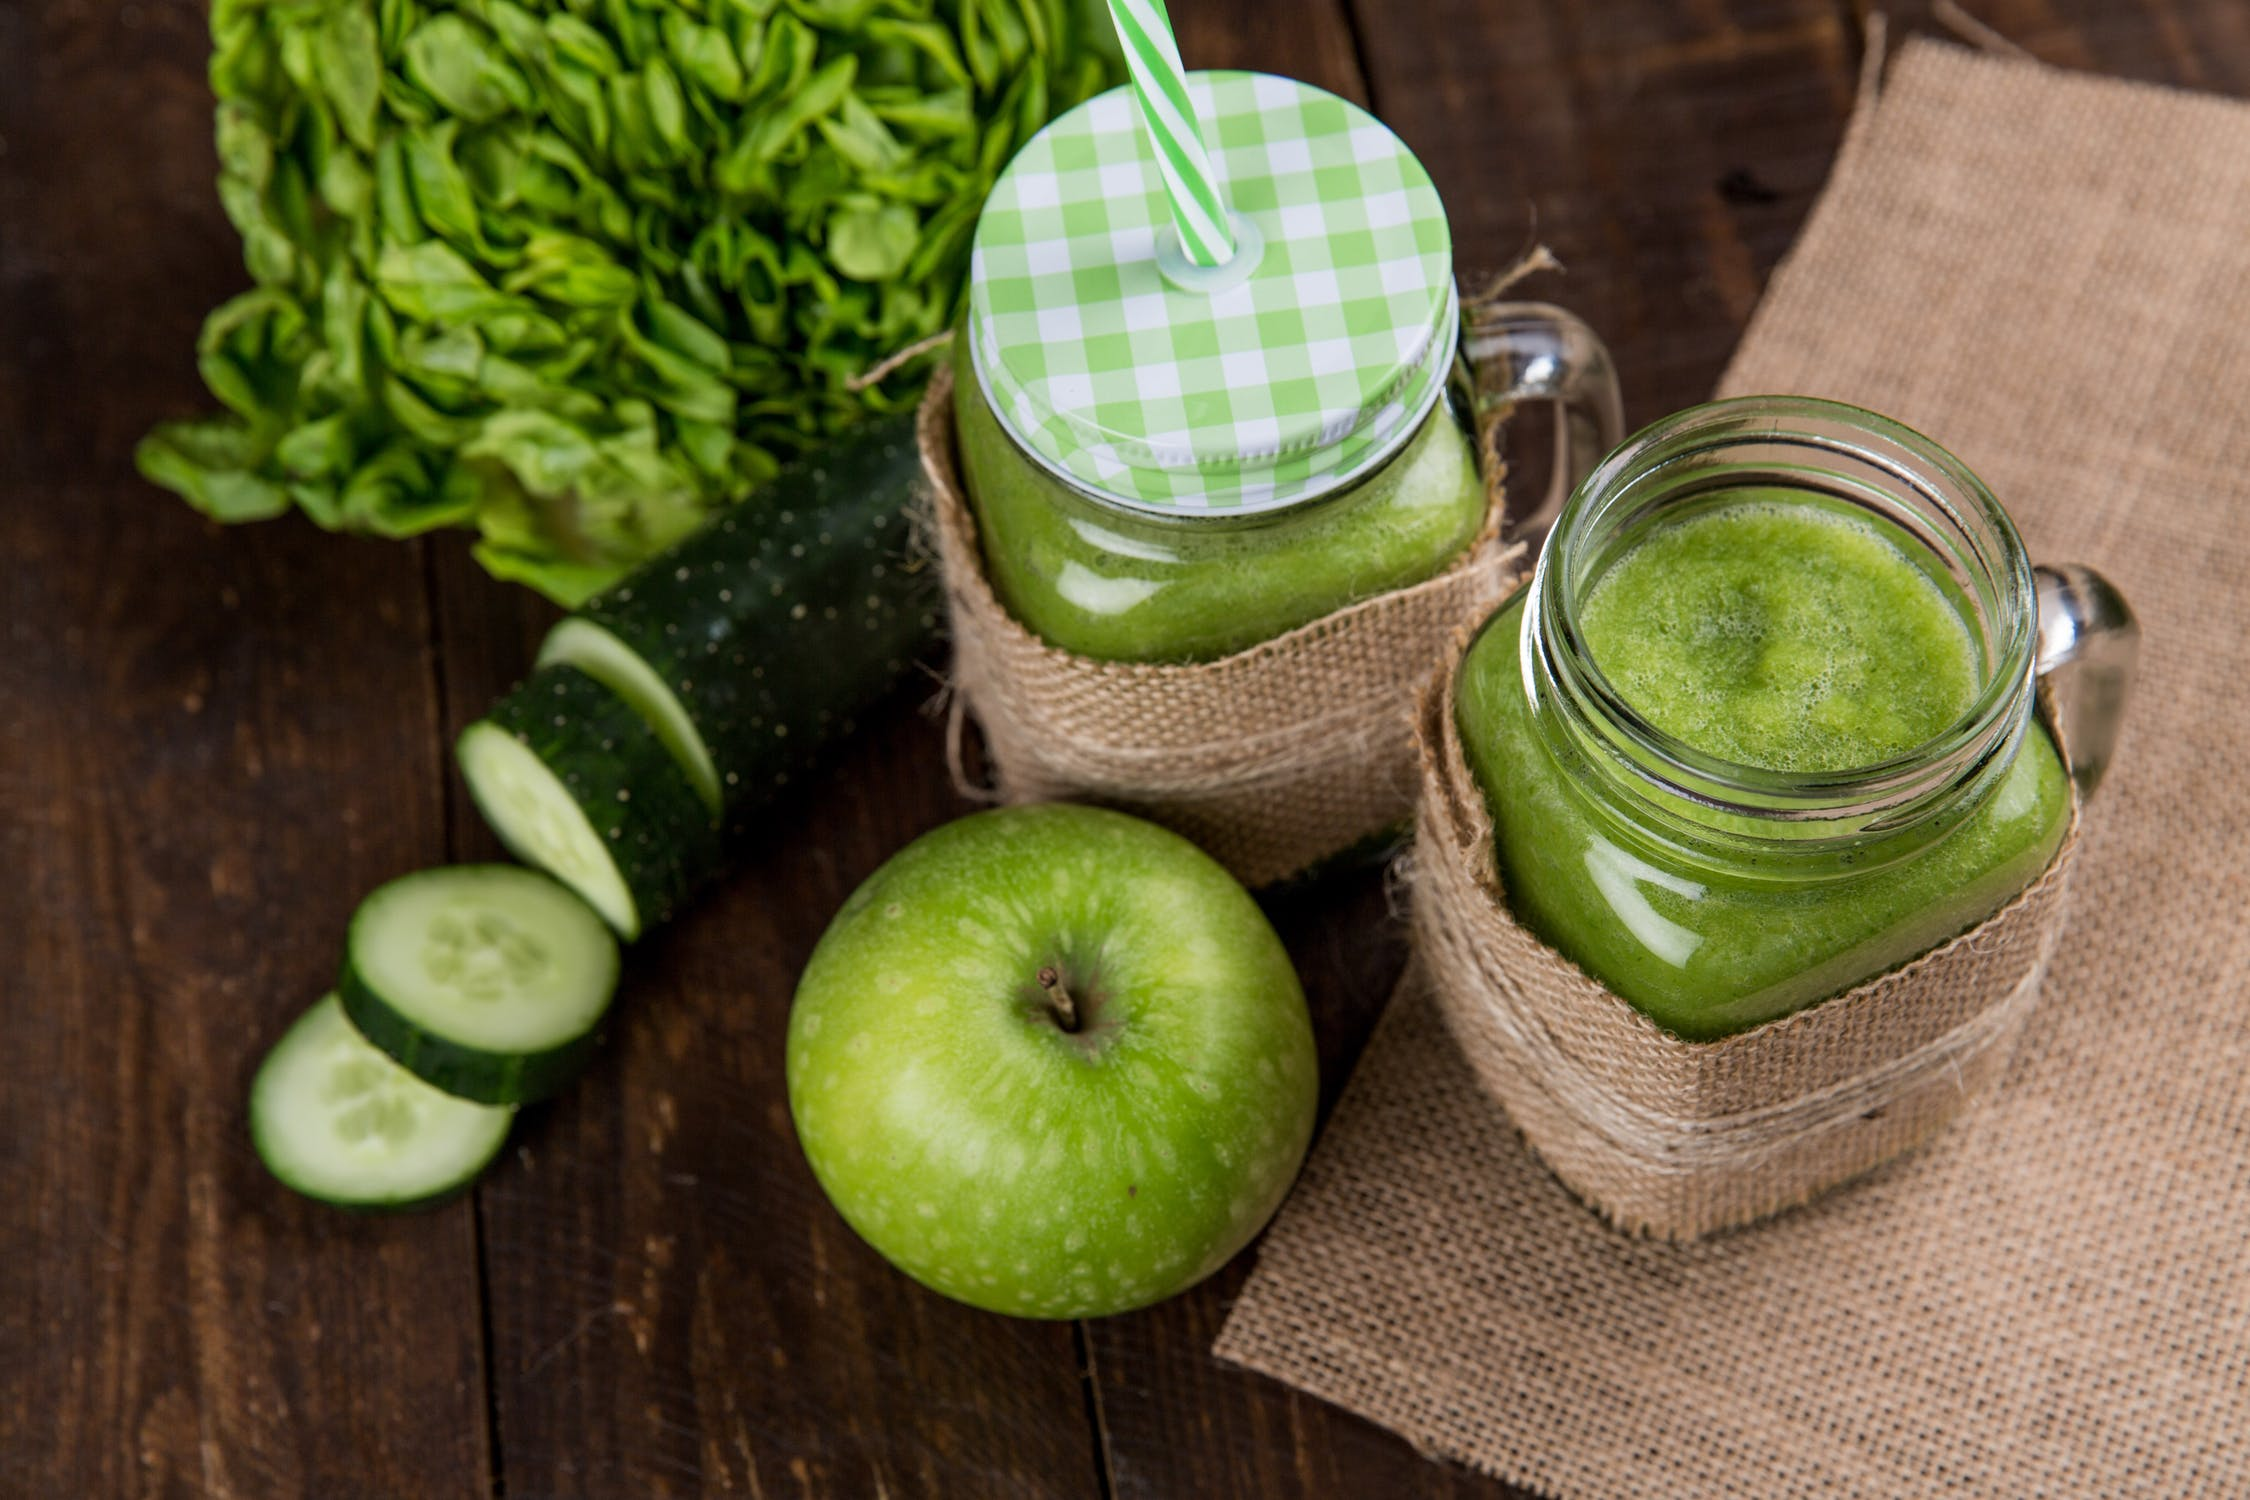 Keeping Produce Fresh for Juicing